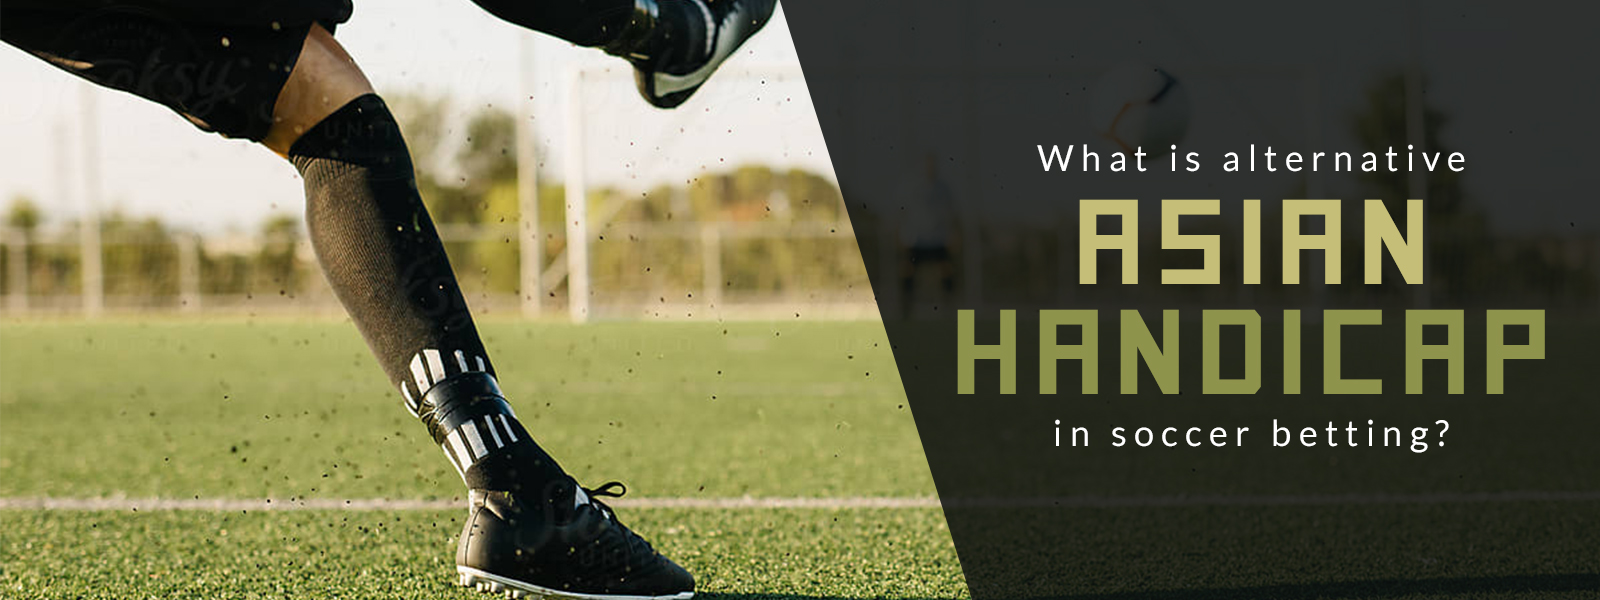 What Is Alternative Asian handicap In Soccer Betting?